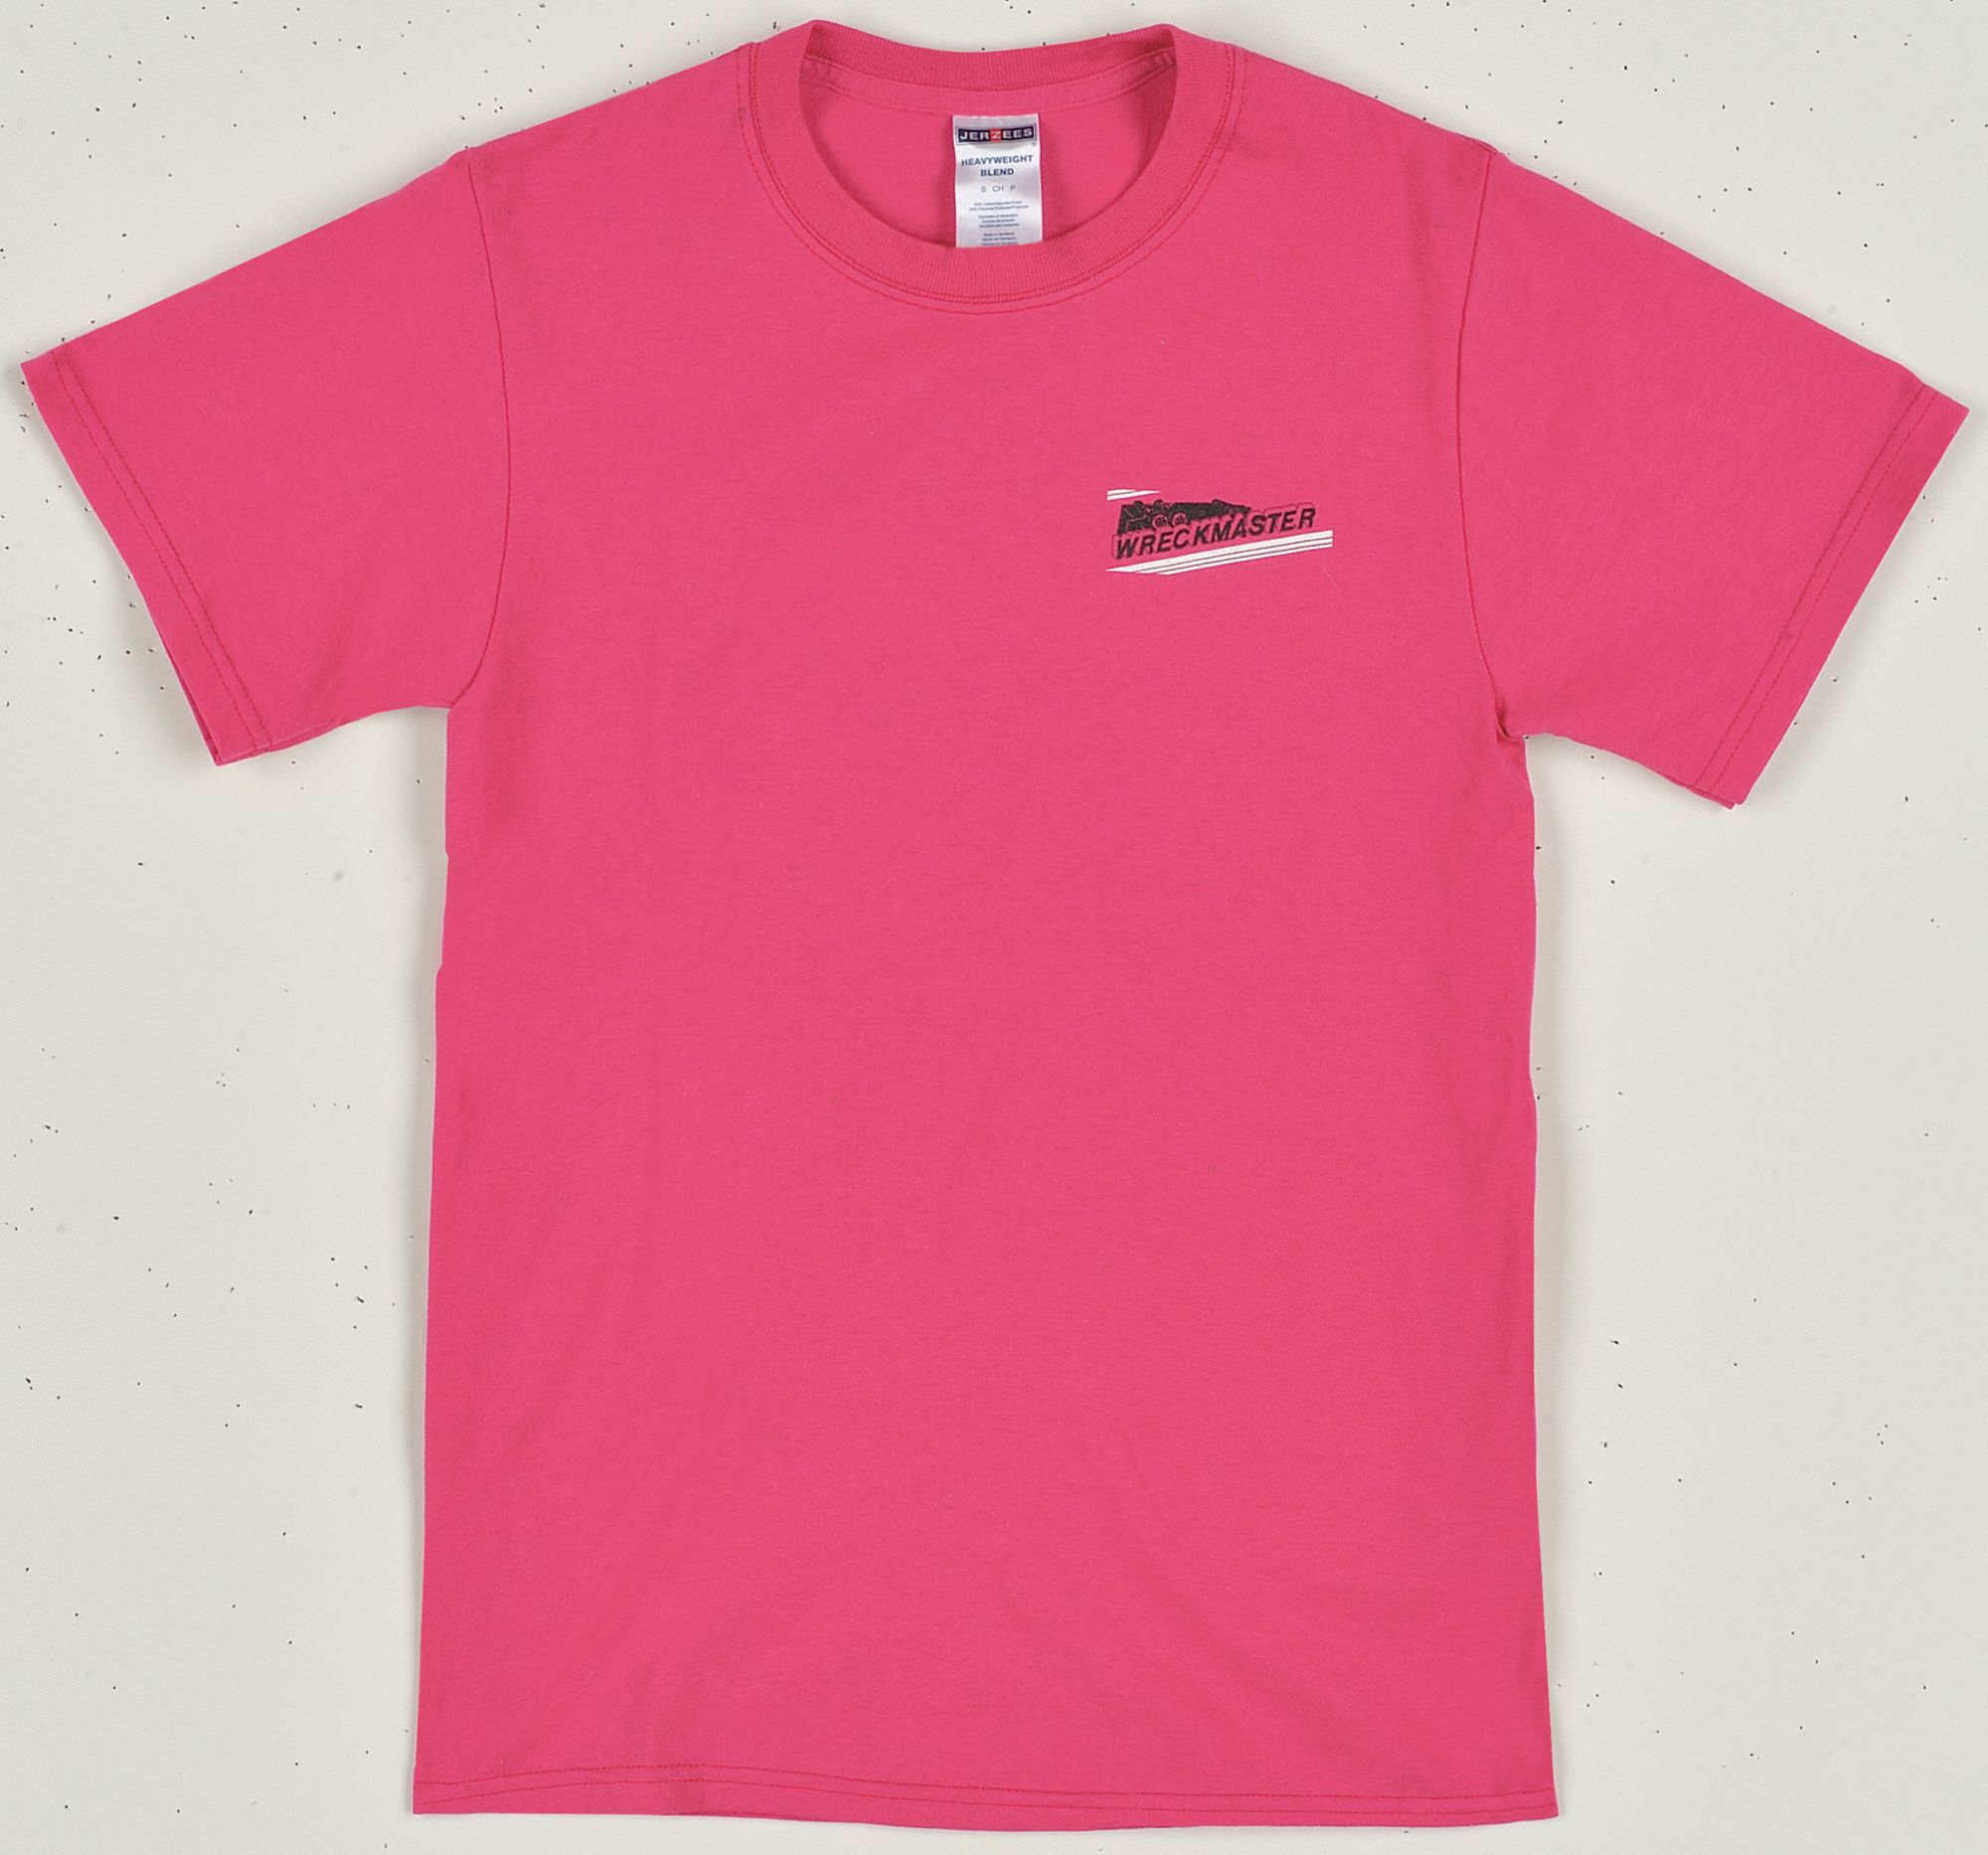 Short Sleeve T-Shirt,  Cotton/Polyester,  Pink,  Pull Over,  Fits Chest Size 32 in to 34 in